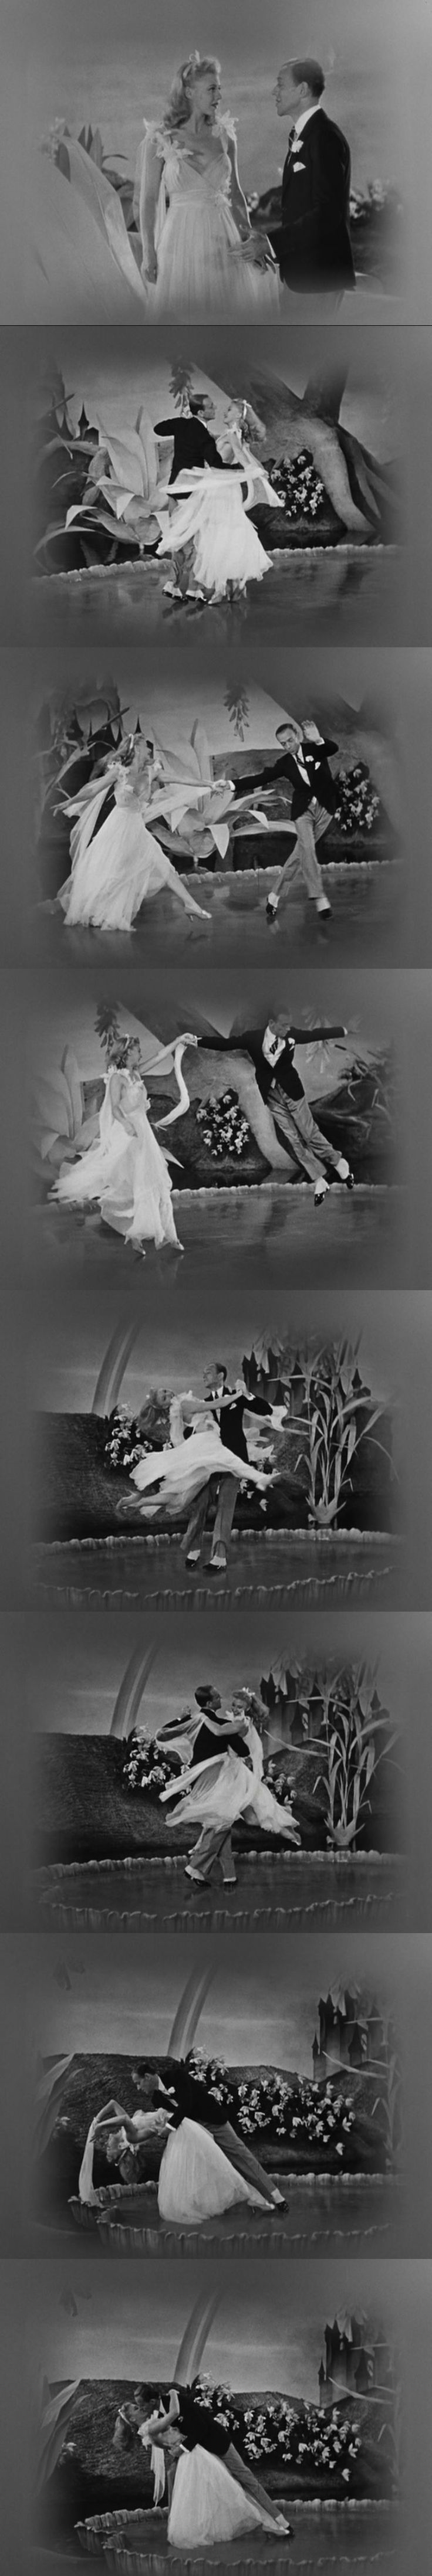 Ginger Rogers and Fred Astaire in a dream sequence dancing to the tune of Irving Berlin's I Used to be Color Blind. It also has the longest kiss between the two brothers. Carefree 1938